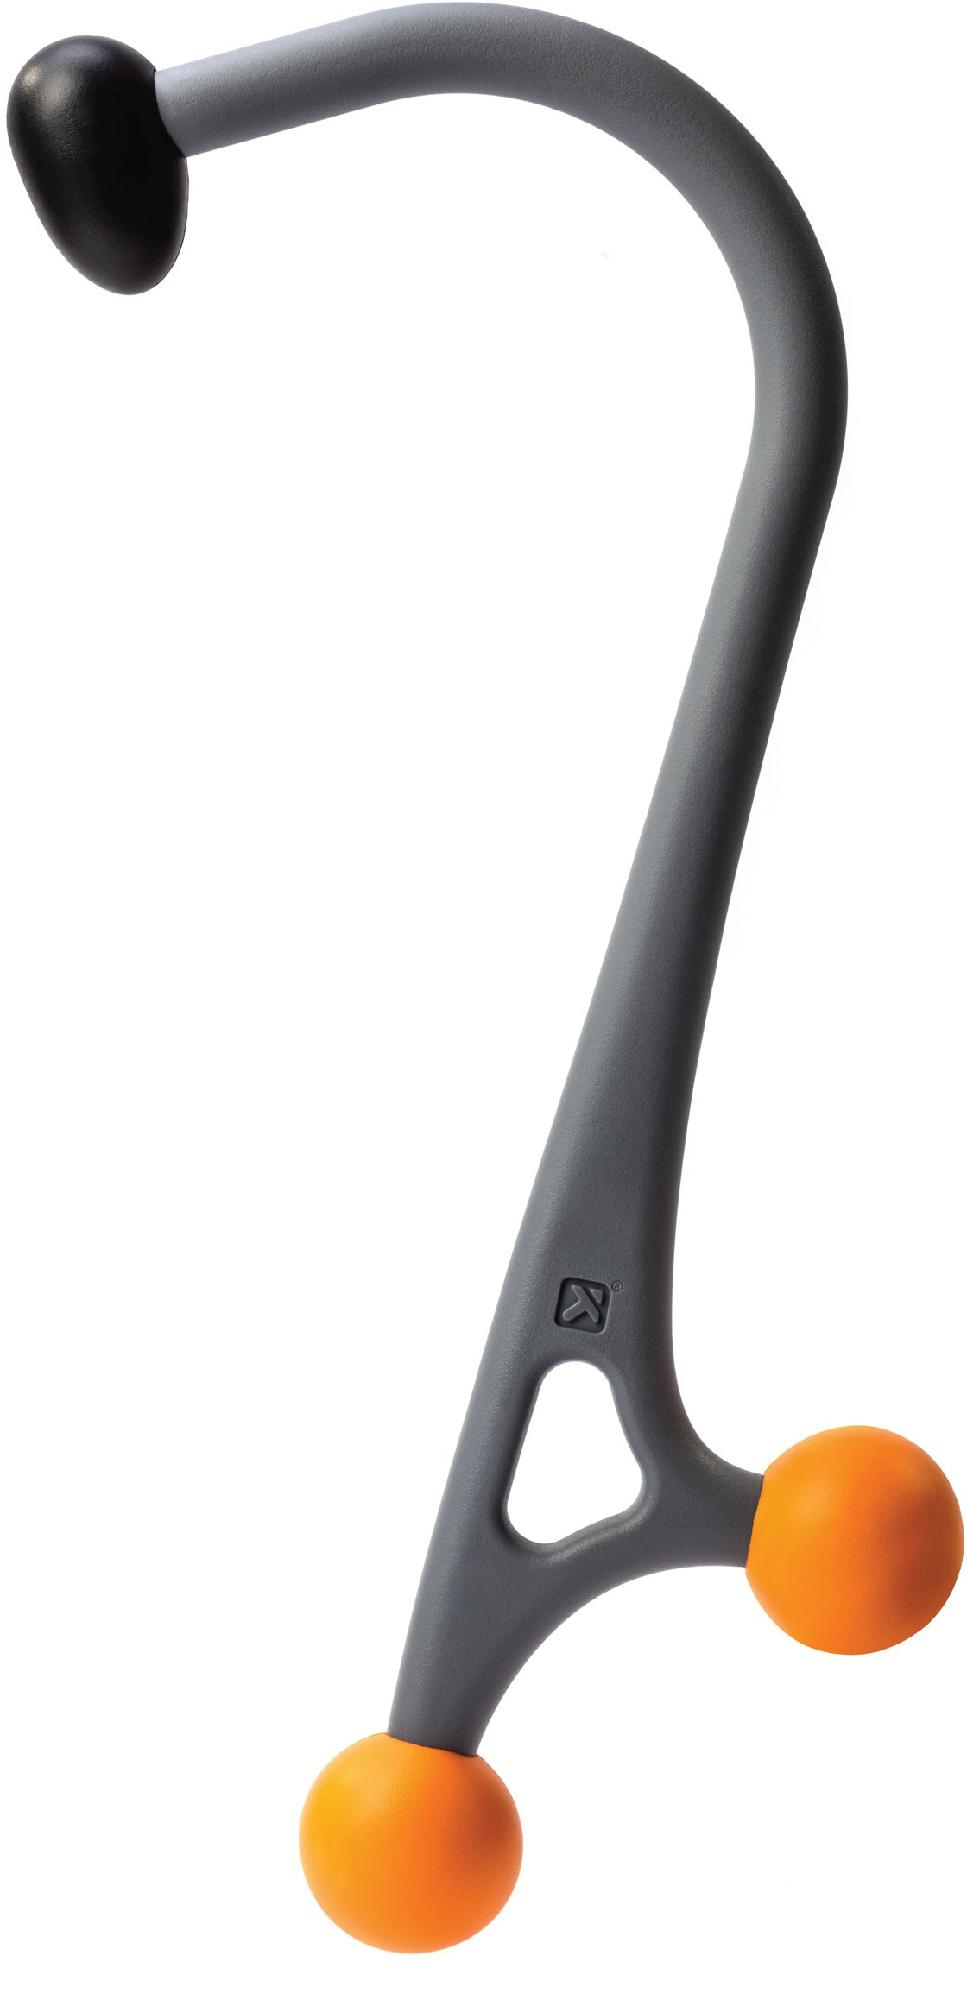 Trigger Point Performance AcuCurve Cane Massager